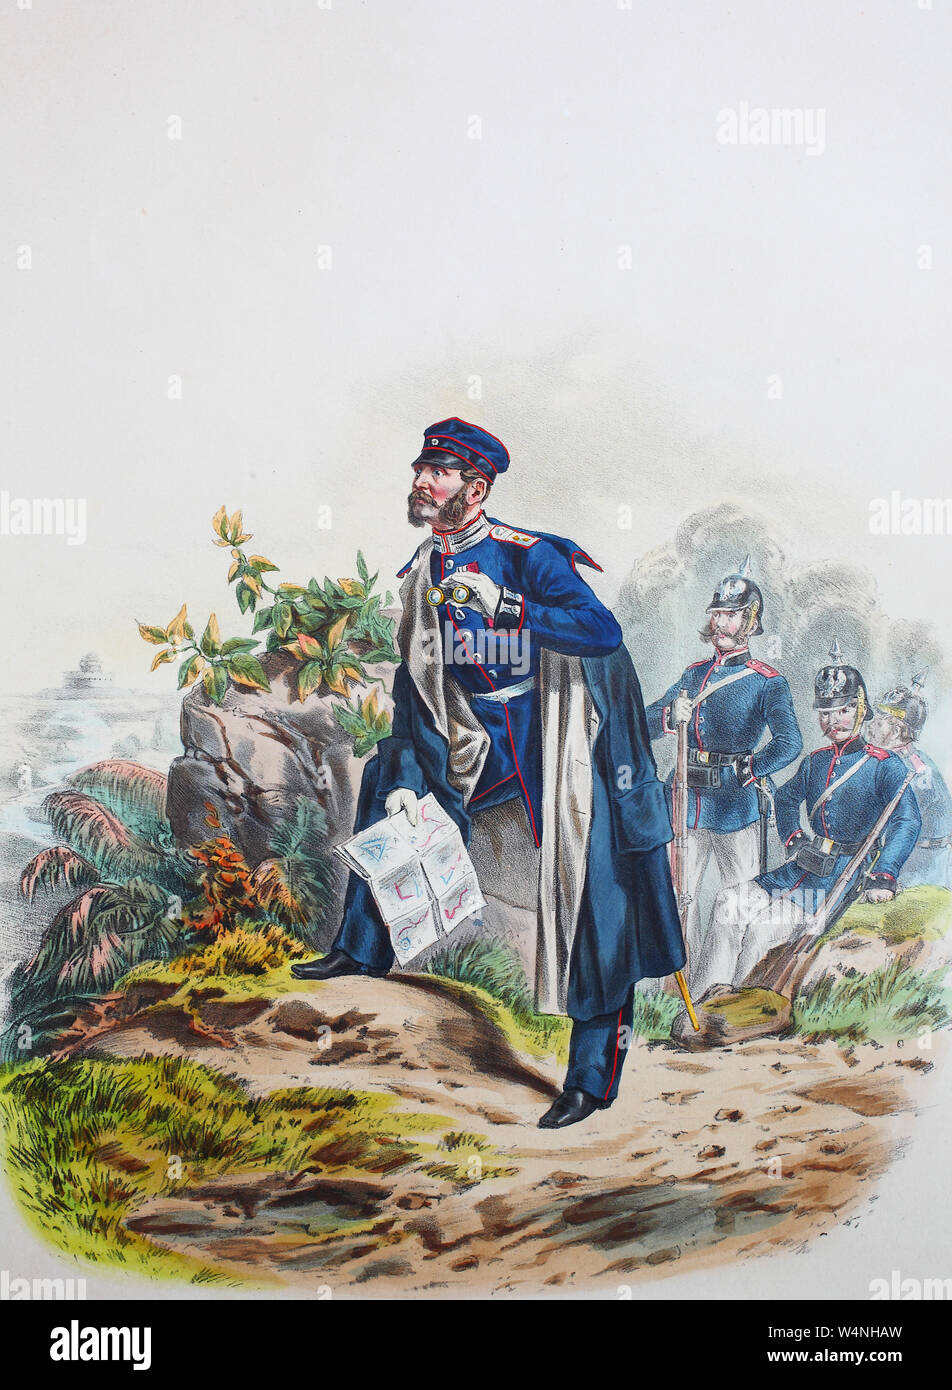 Royal Prussian Army, Guards Corps, Preußens Heer, preussische Garde, Ingenieur Corps, Offizier, Digital improved reproduction of an illustration from the 19th century Stock Photo